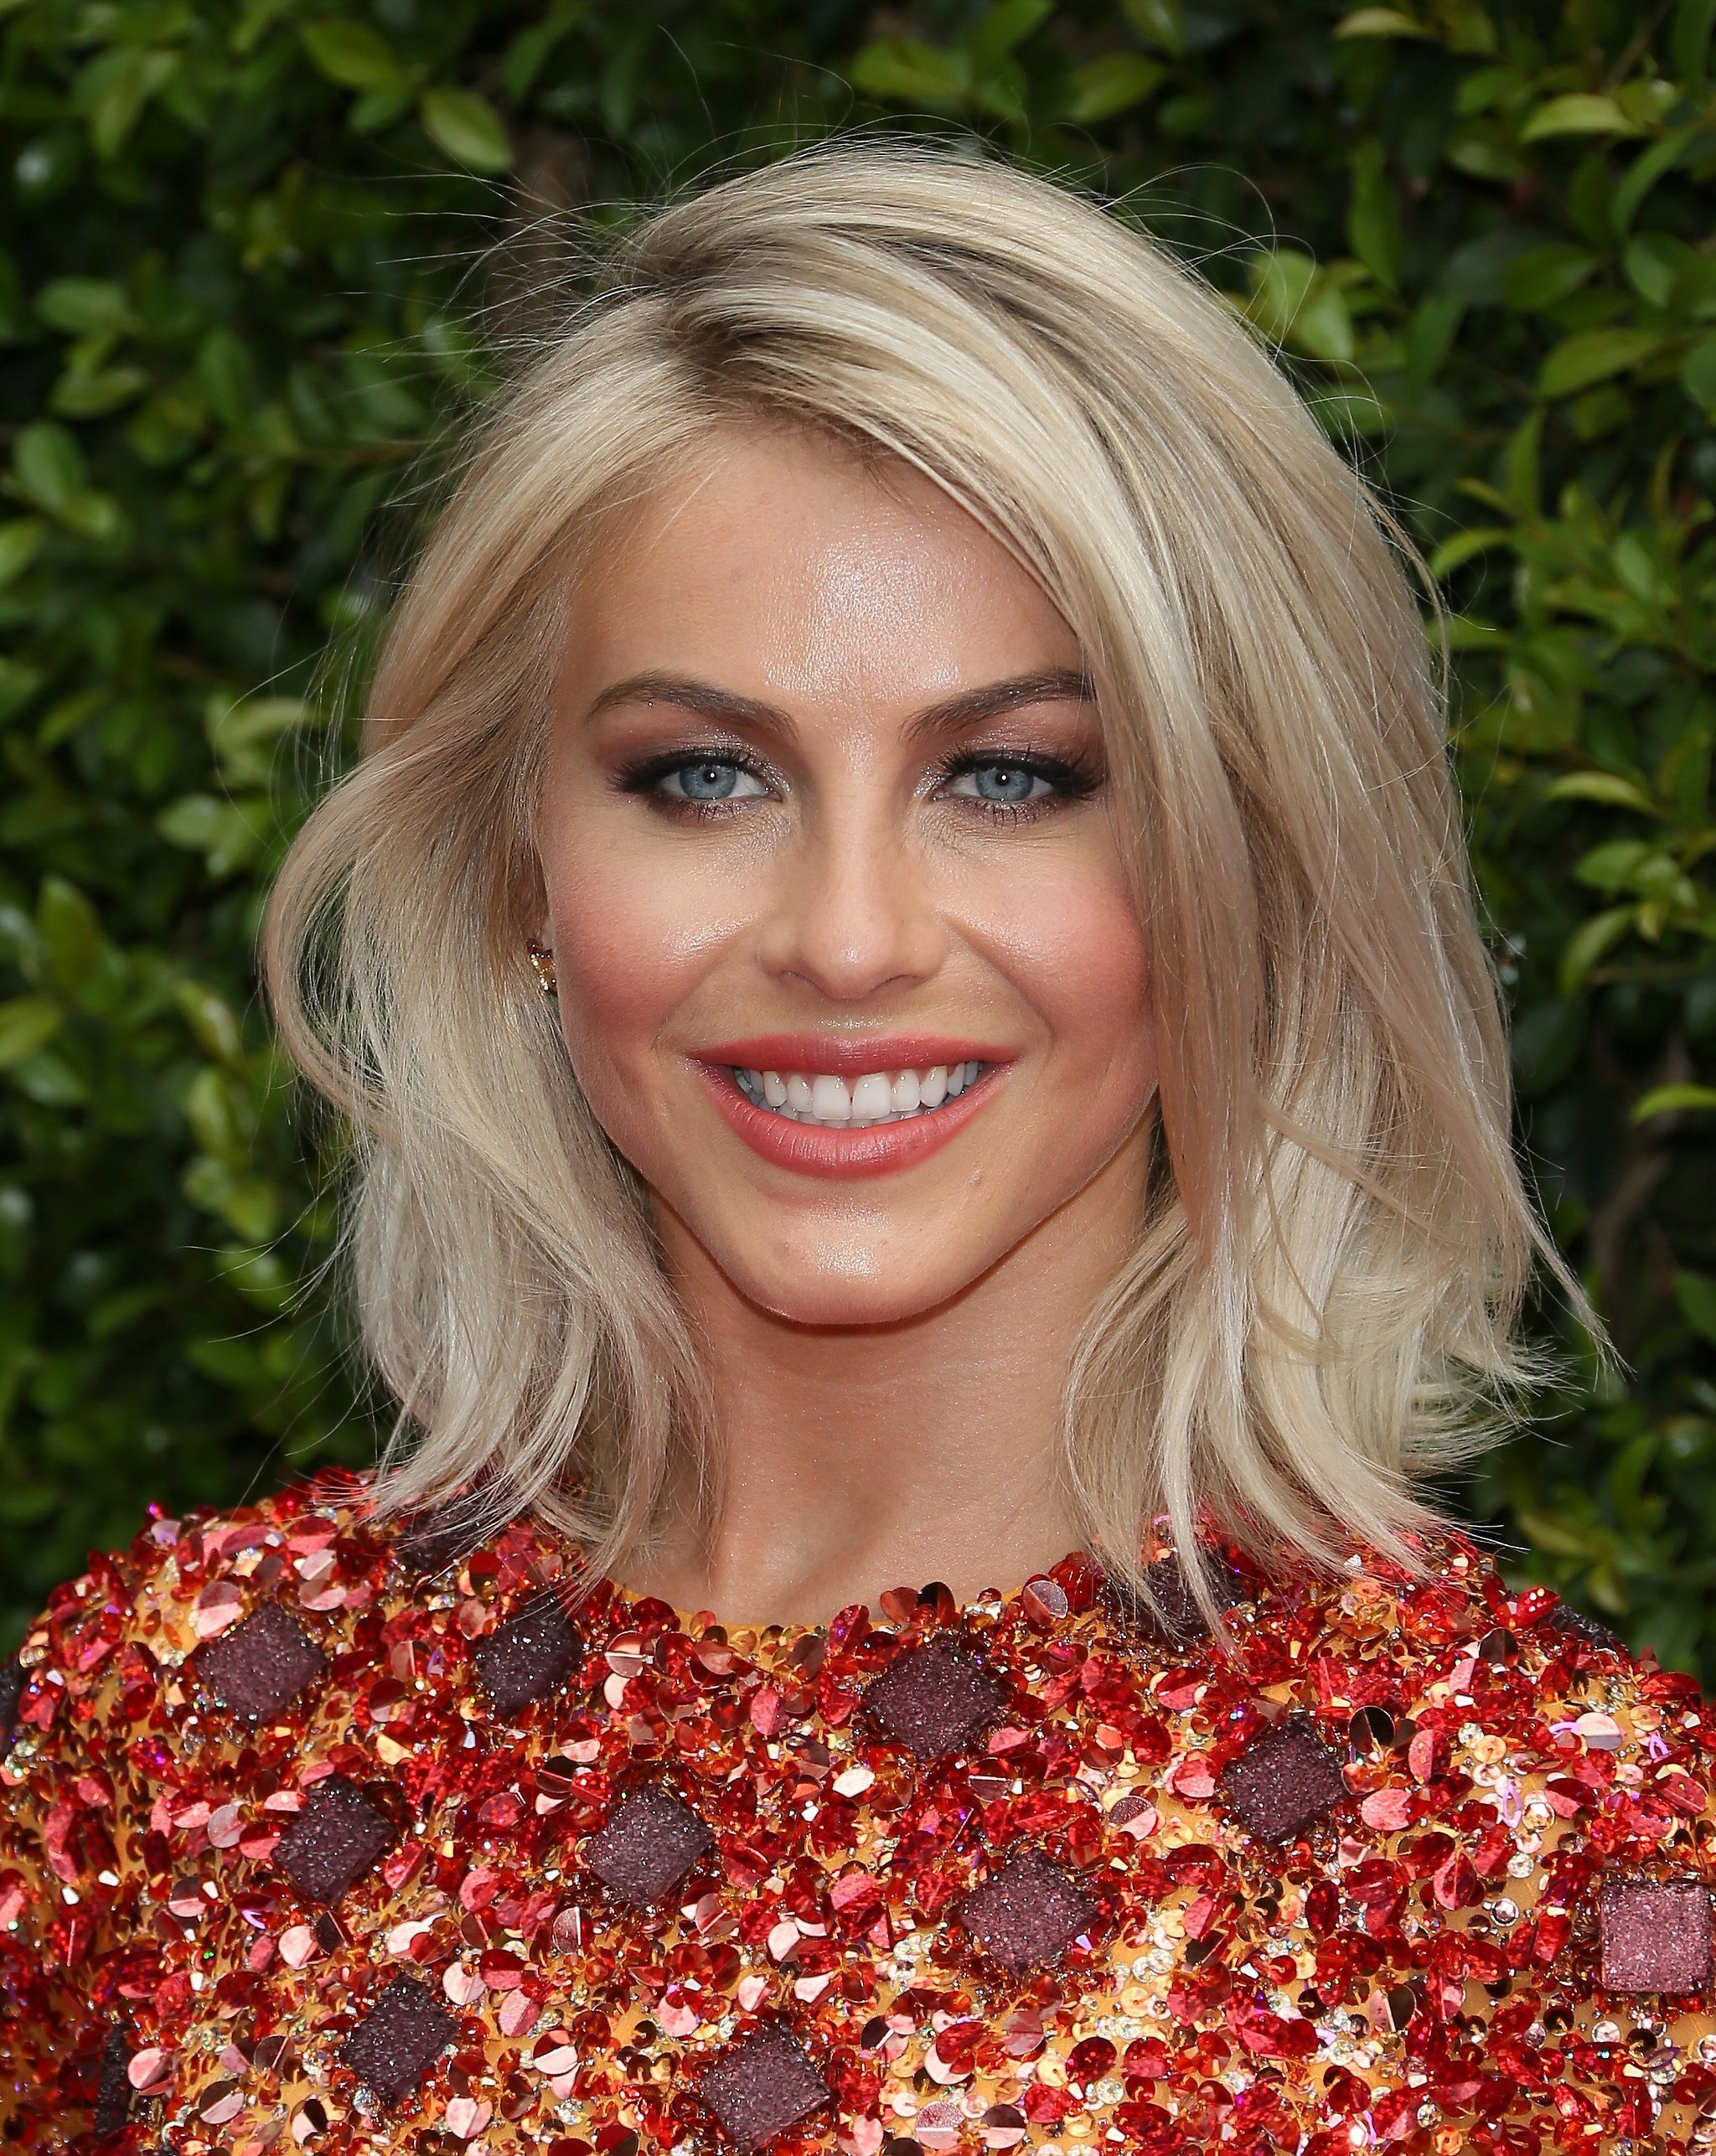 The Best Short Hairstyles Ideas - byrdie.com